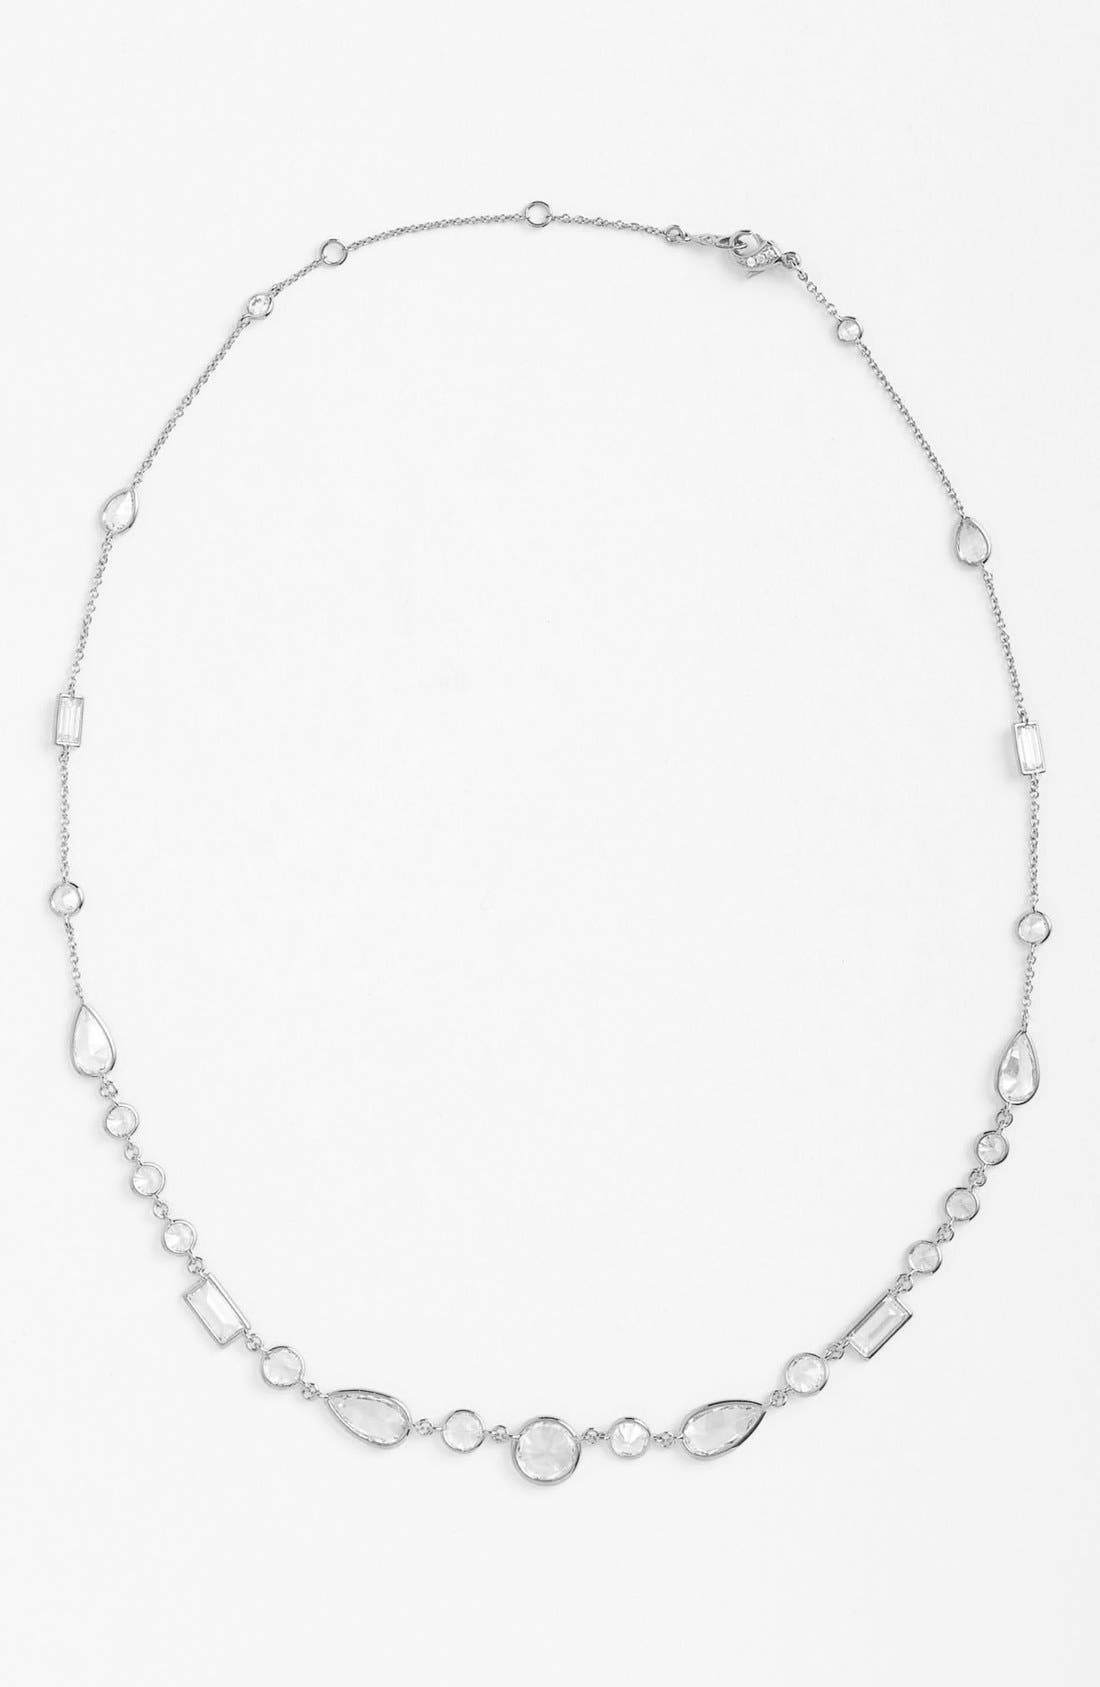 Alternate Image 1 Selected - Nadri Mixed Cut Cubic Zirconia Necklace (Nordstrom Exclusive)